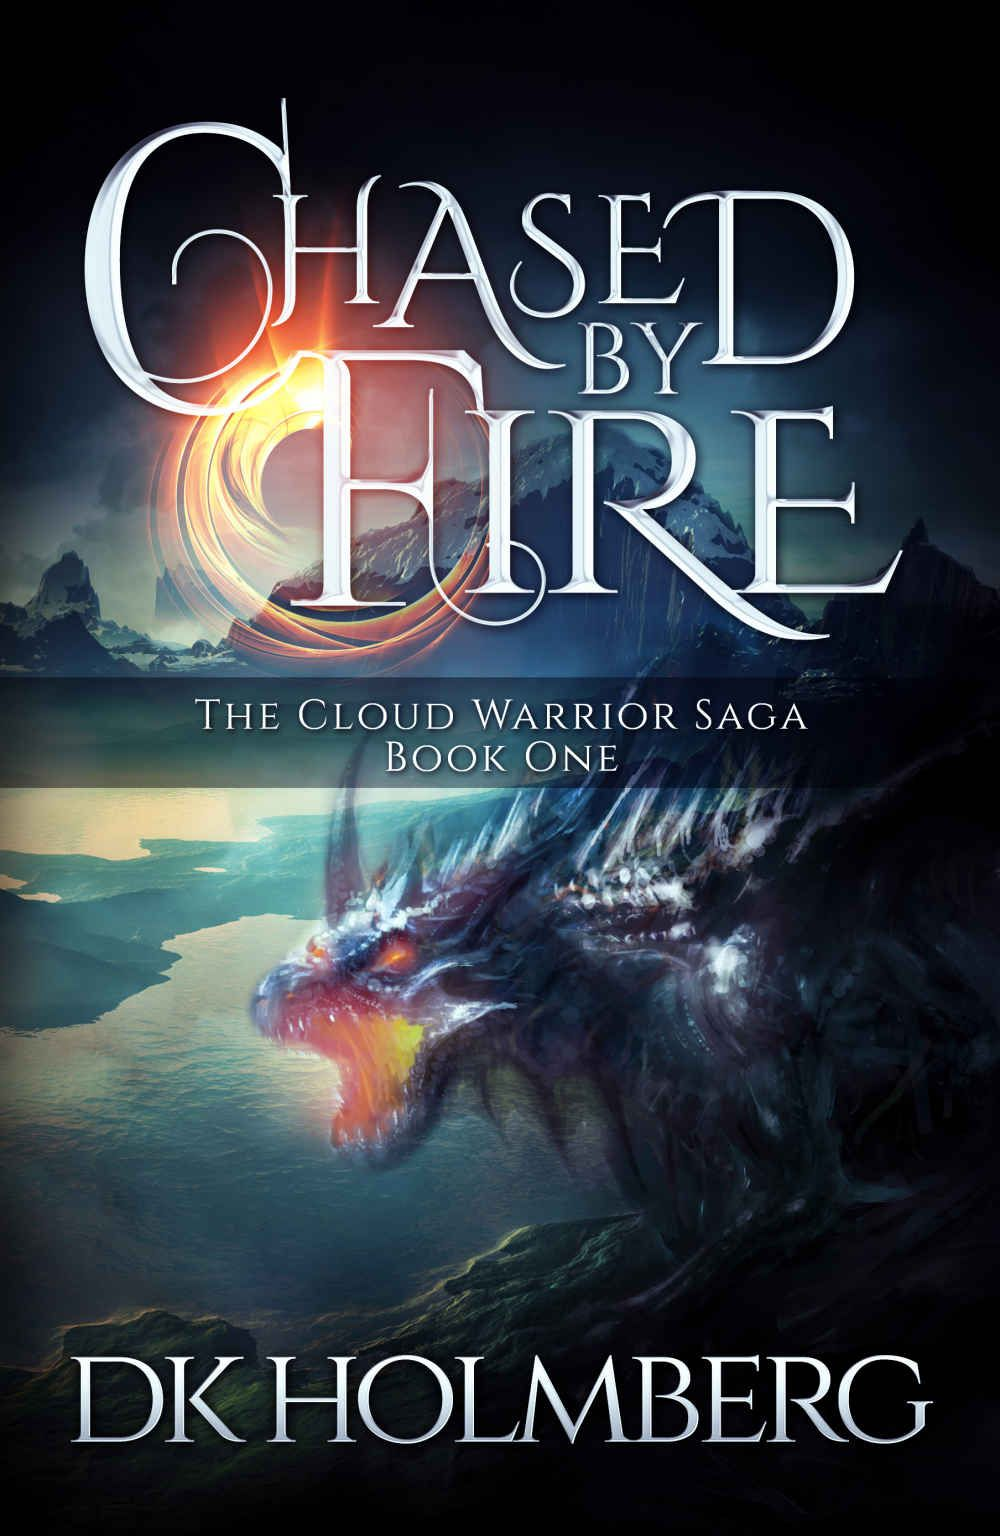 Amazon: Chased By Fire (the Cloud Warrior Saga Book 1) Ebook